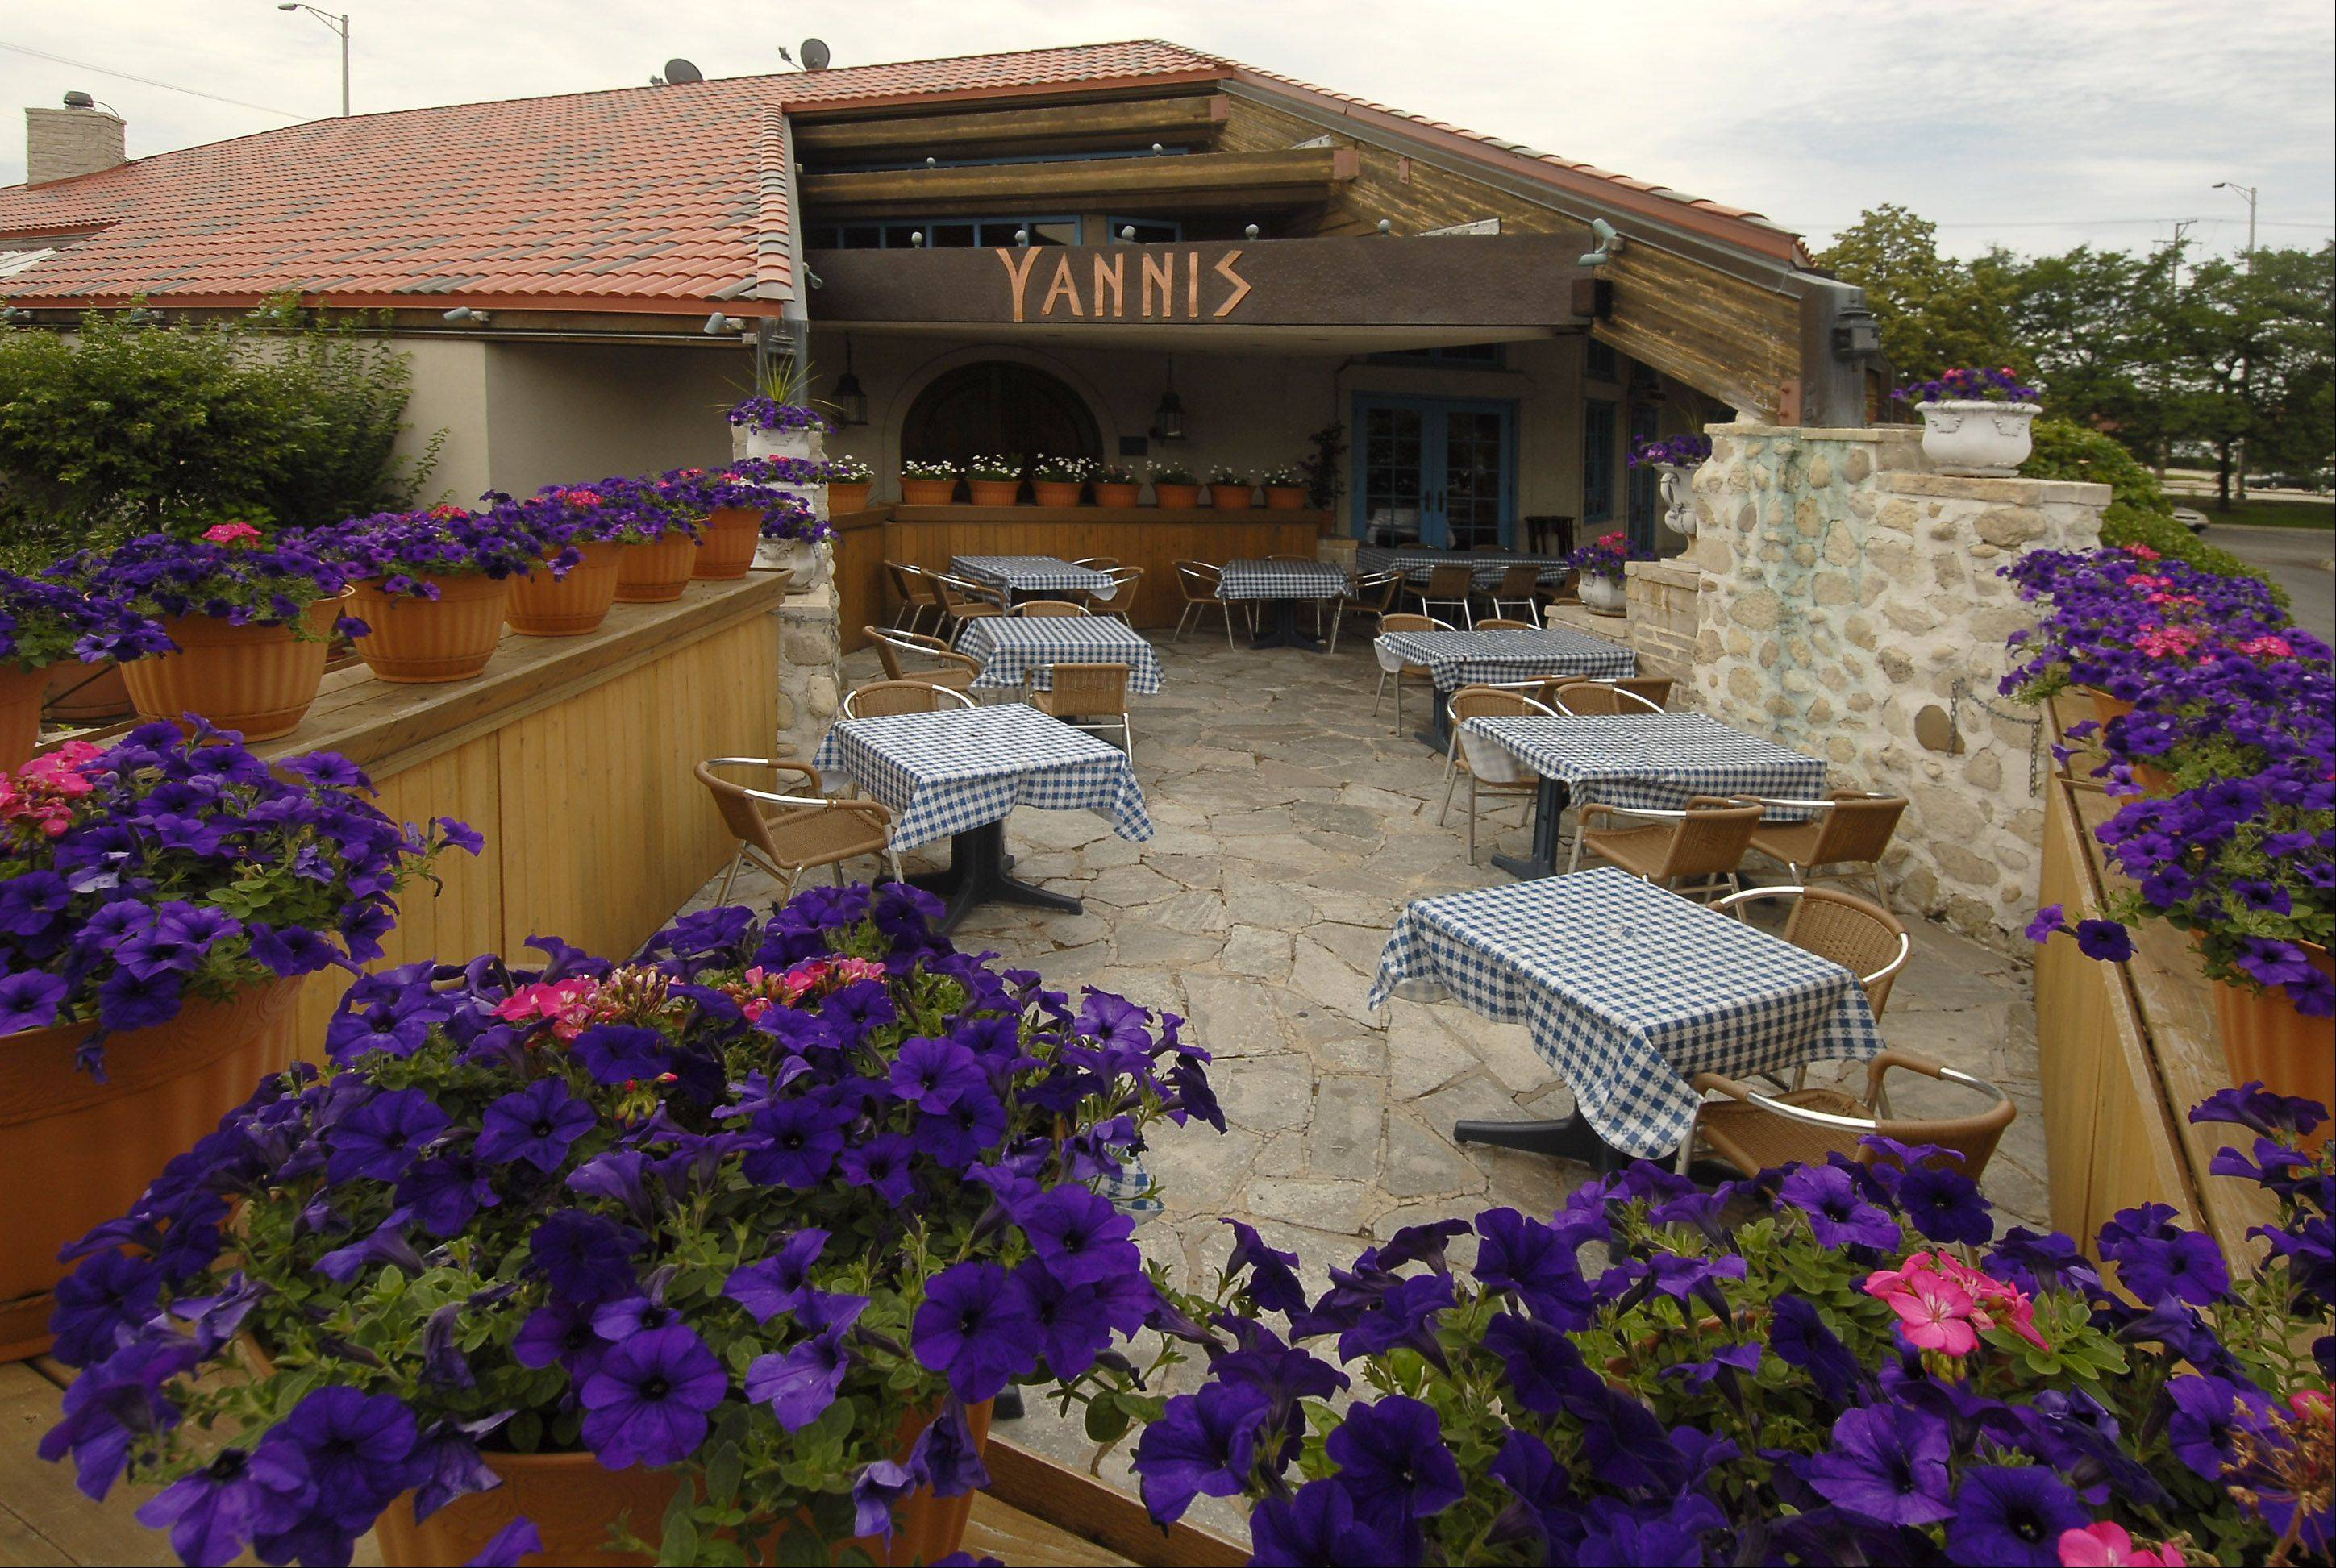 Bill Zars/bzars@dailyherald.com  Yanni's Greek restaurant, 10 E. Algonquin Road in Arlington Heights, shut its doors Sunday.